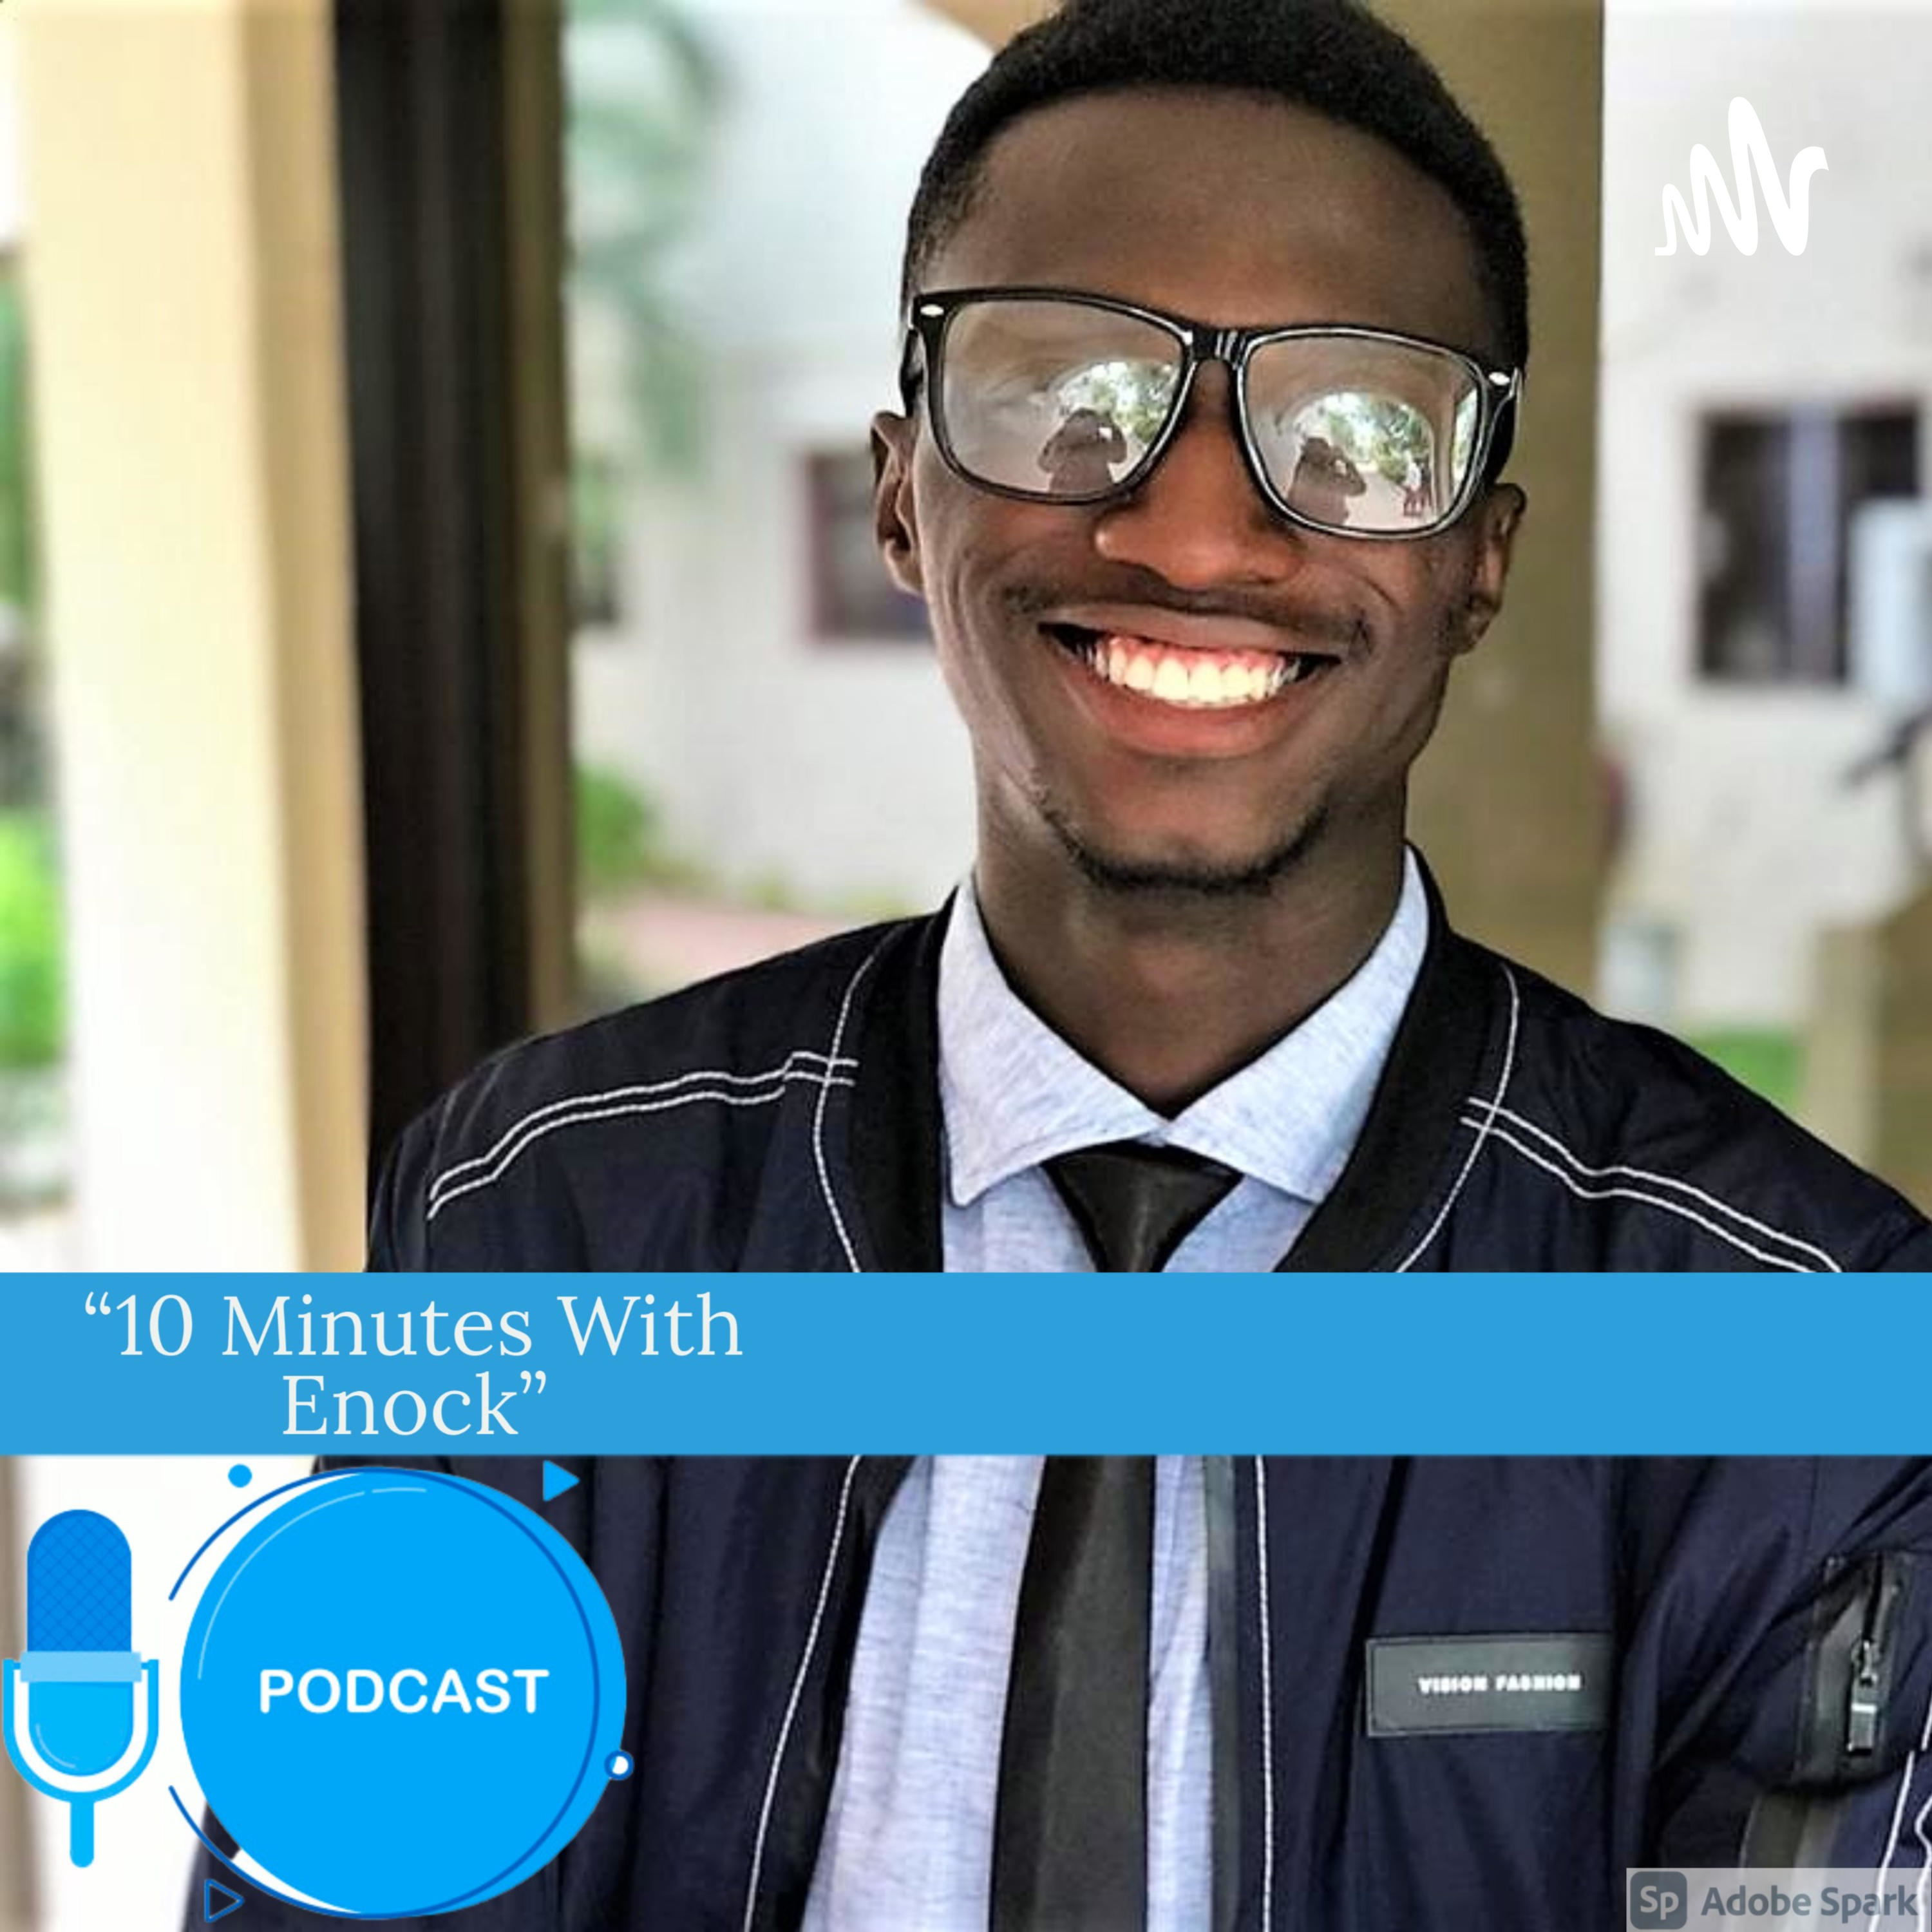 10 Minutes With Enock